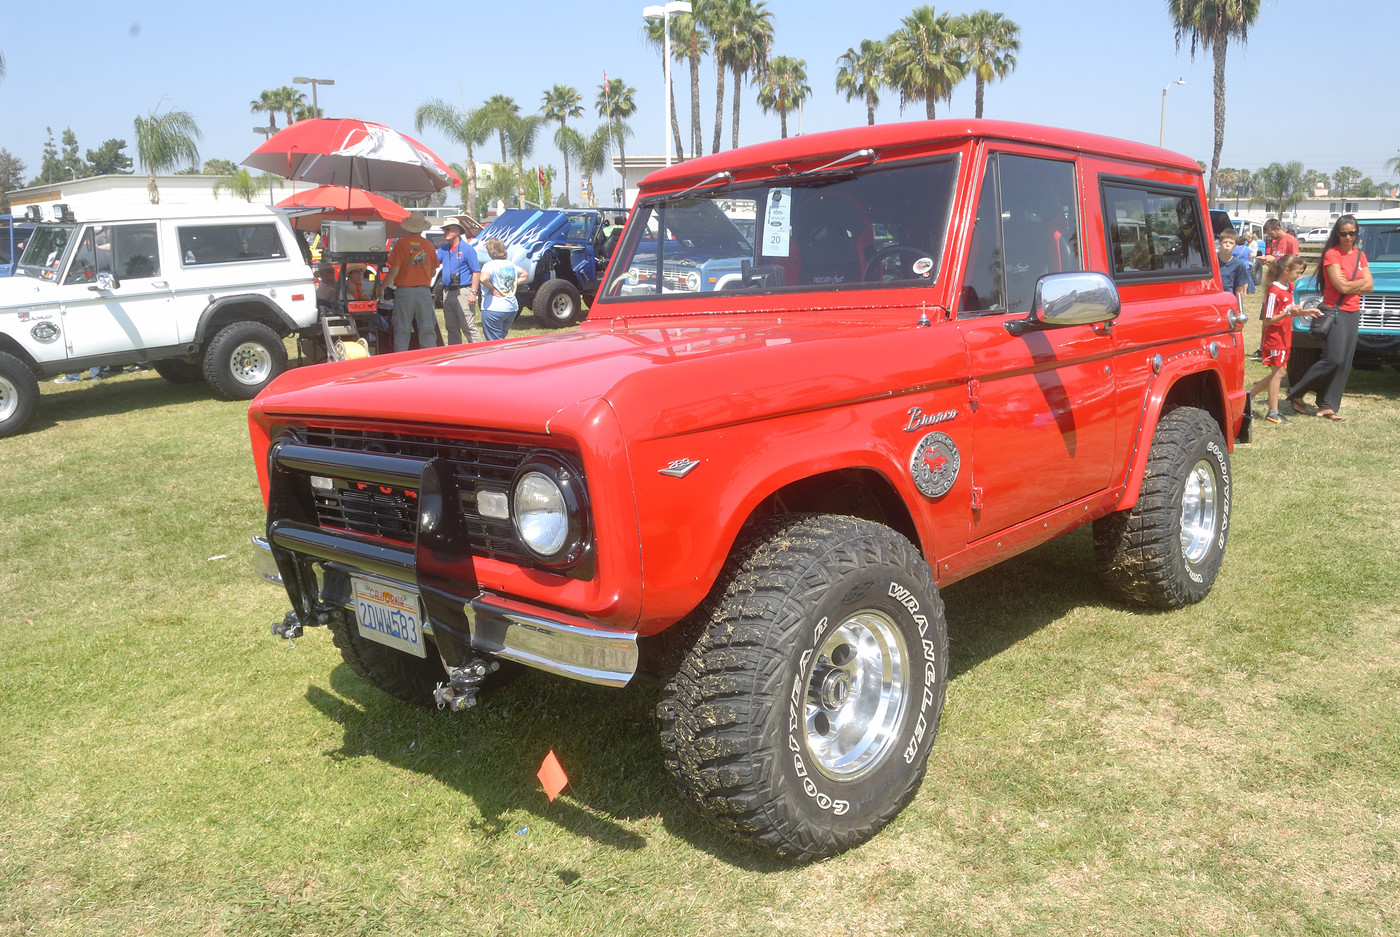 19XX Ford Bronco owned by Russ Meskell DSC 4908